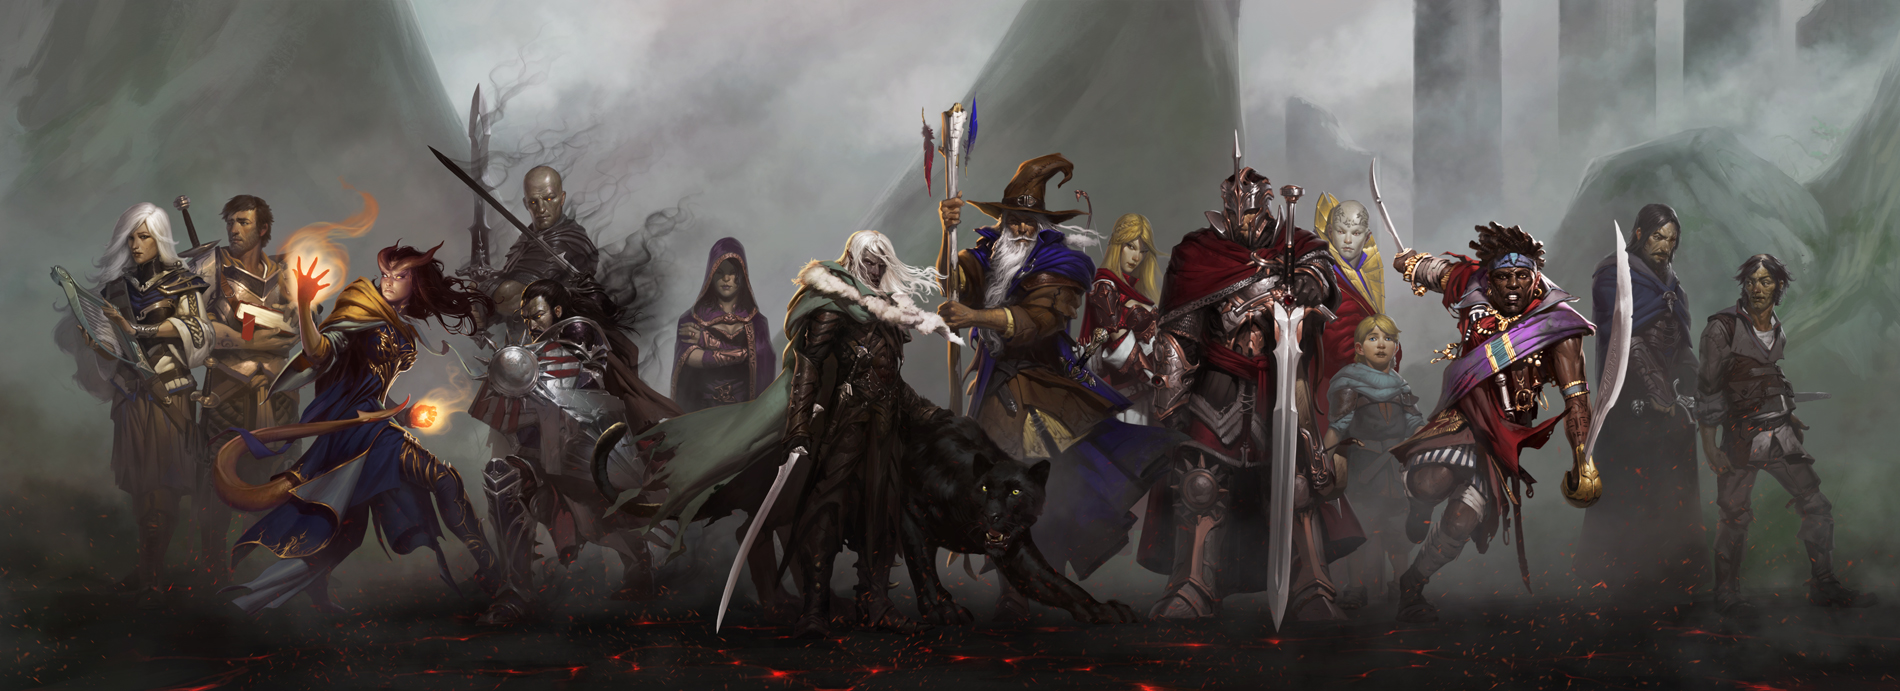 The Sundering - Changing The Forgotten Realms